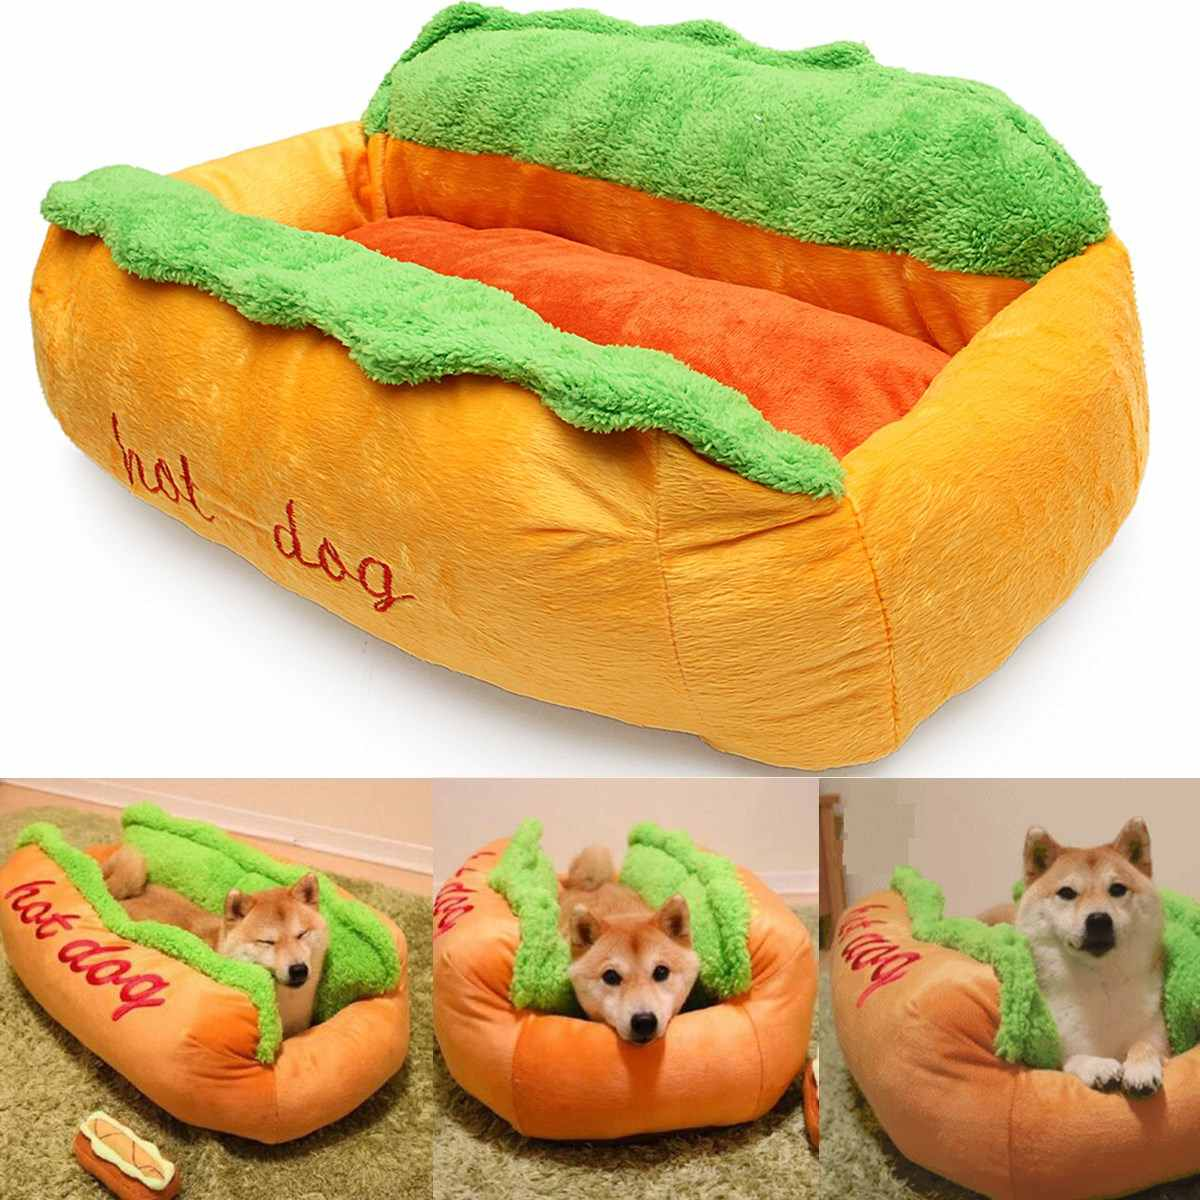 Washable Cotton Hot Dog Pet Dog Bed Warming Dog House Soft Material Nest Dog Basket Fall and Winter Warm Kennel For Pet SuppliesWashable Cotton Hot Dog Pet Dog Bed Warming Dog House Soft Material Nest Dog Basket Fall and Winter Warm Kennel For Pet Supplies